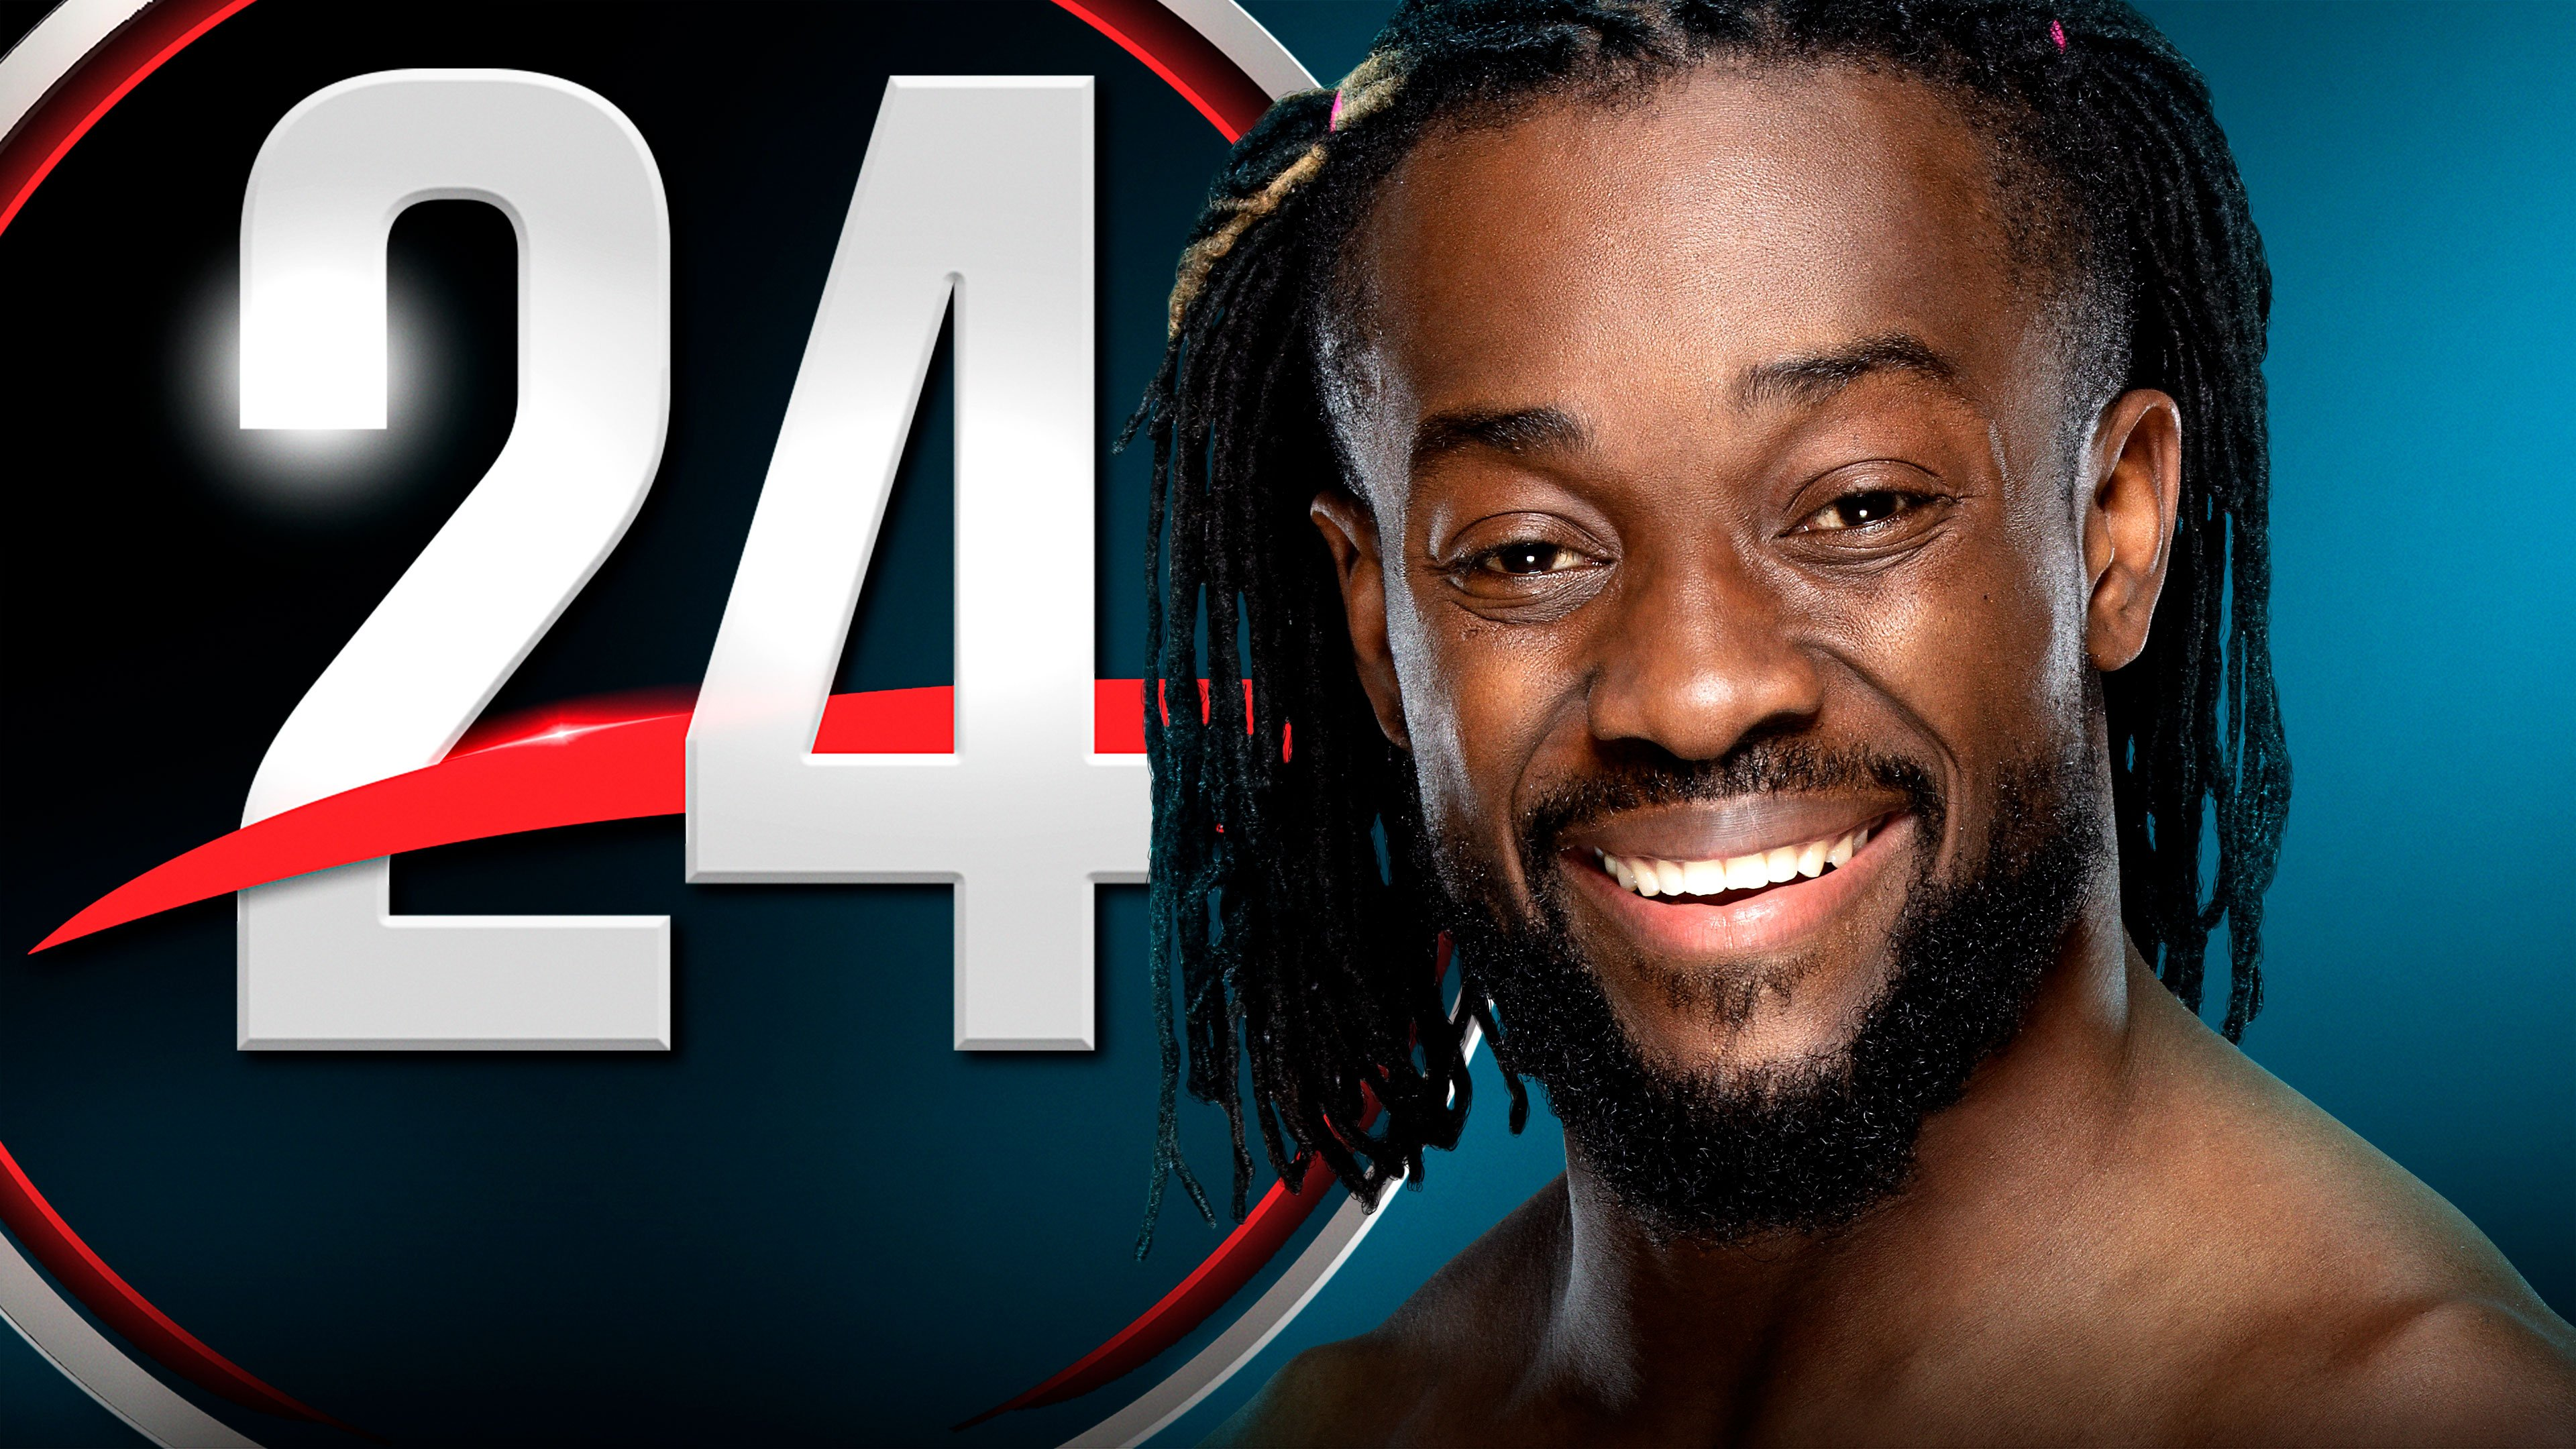 Kofi Kingston: The Year of Return